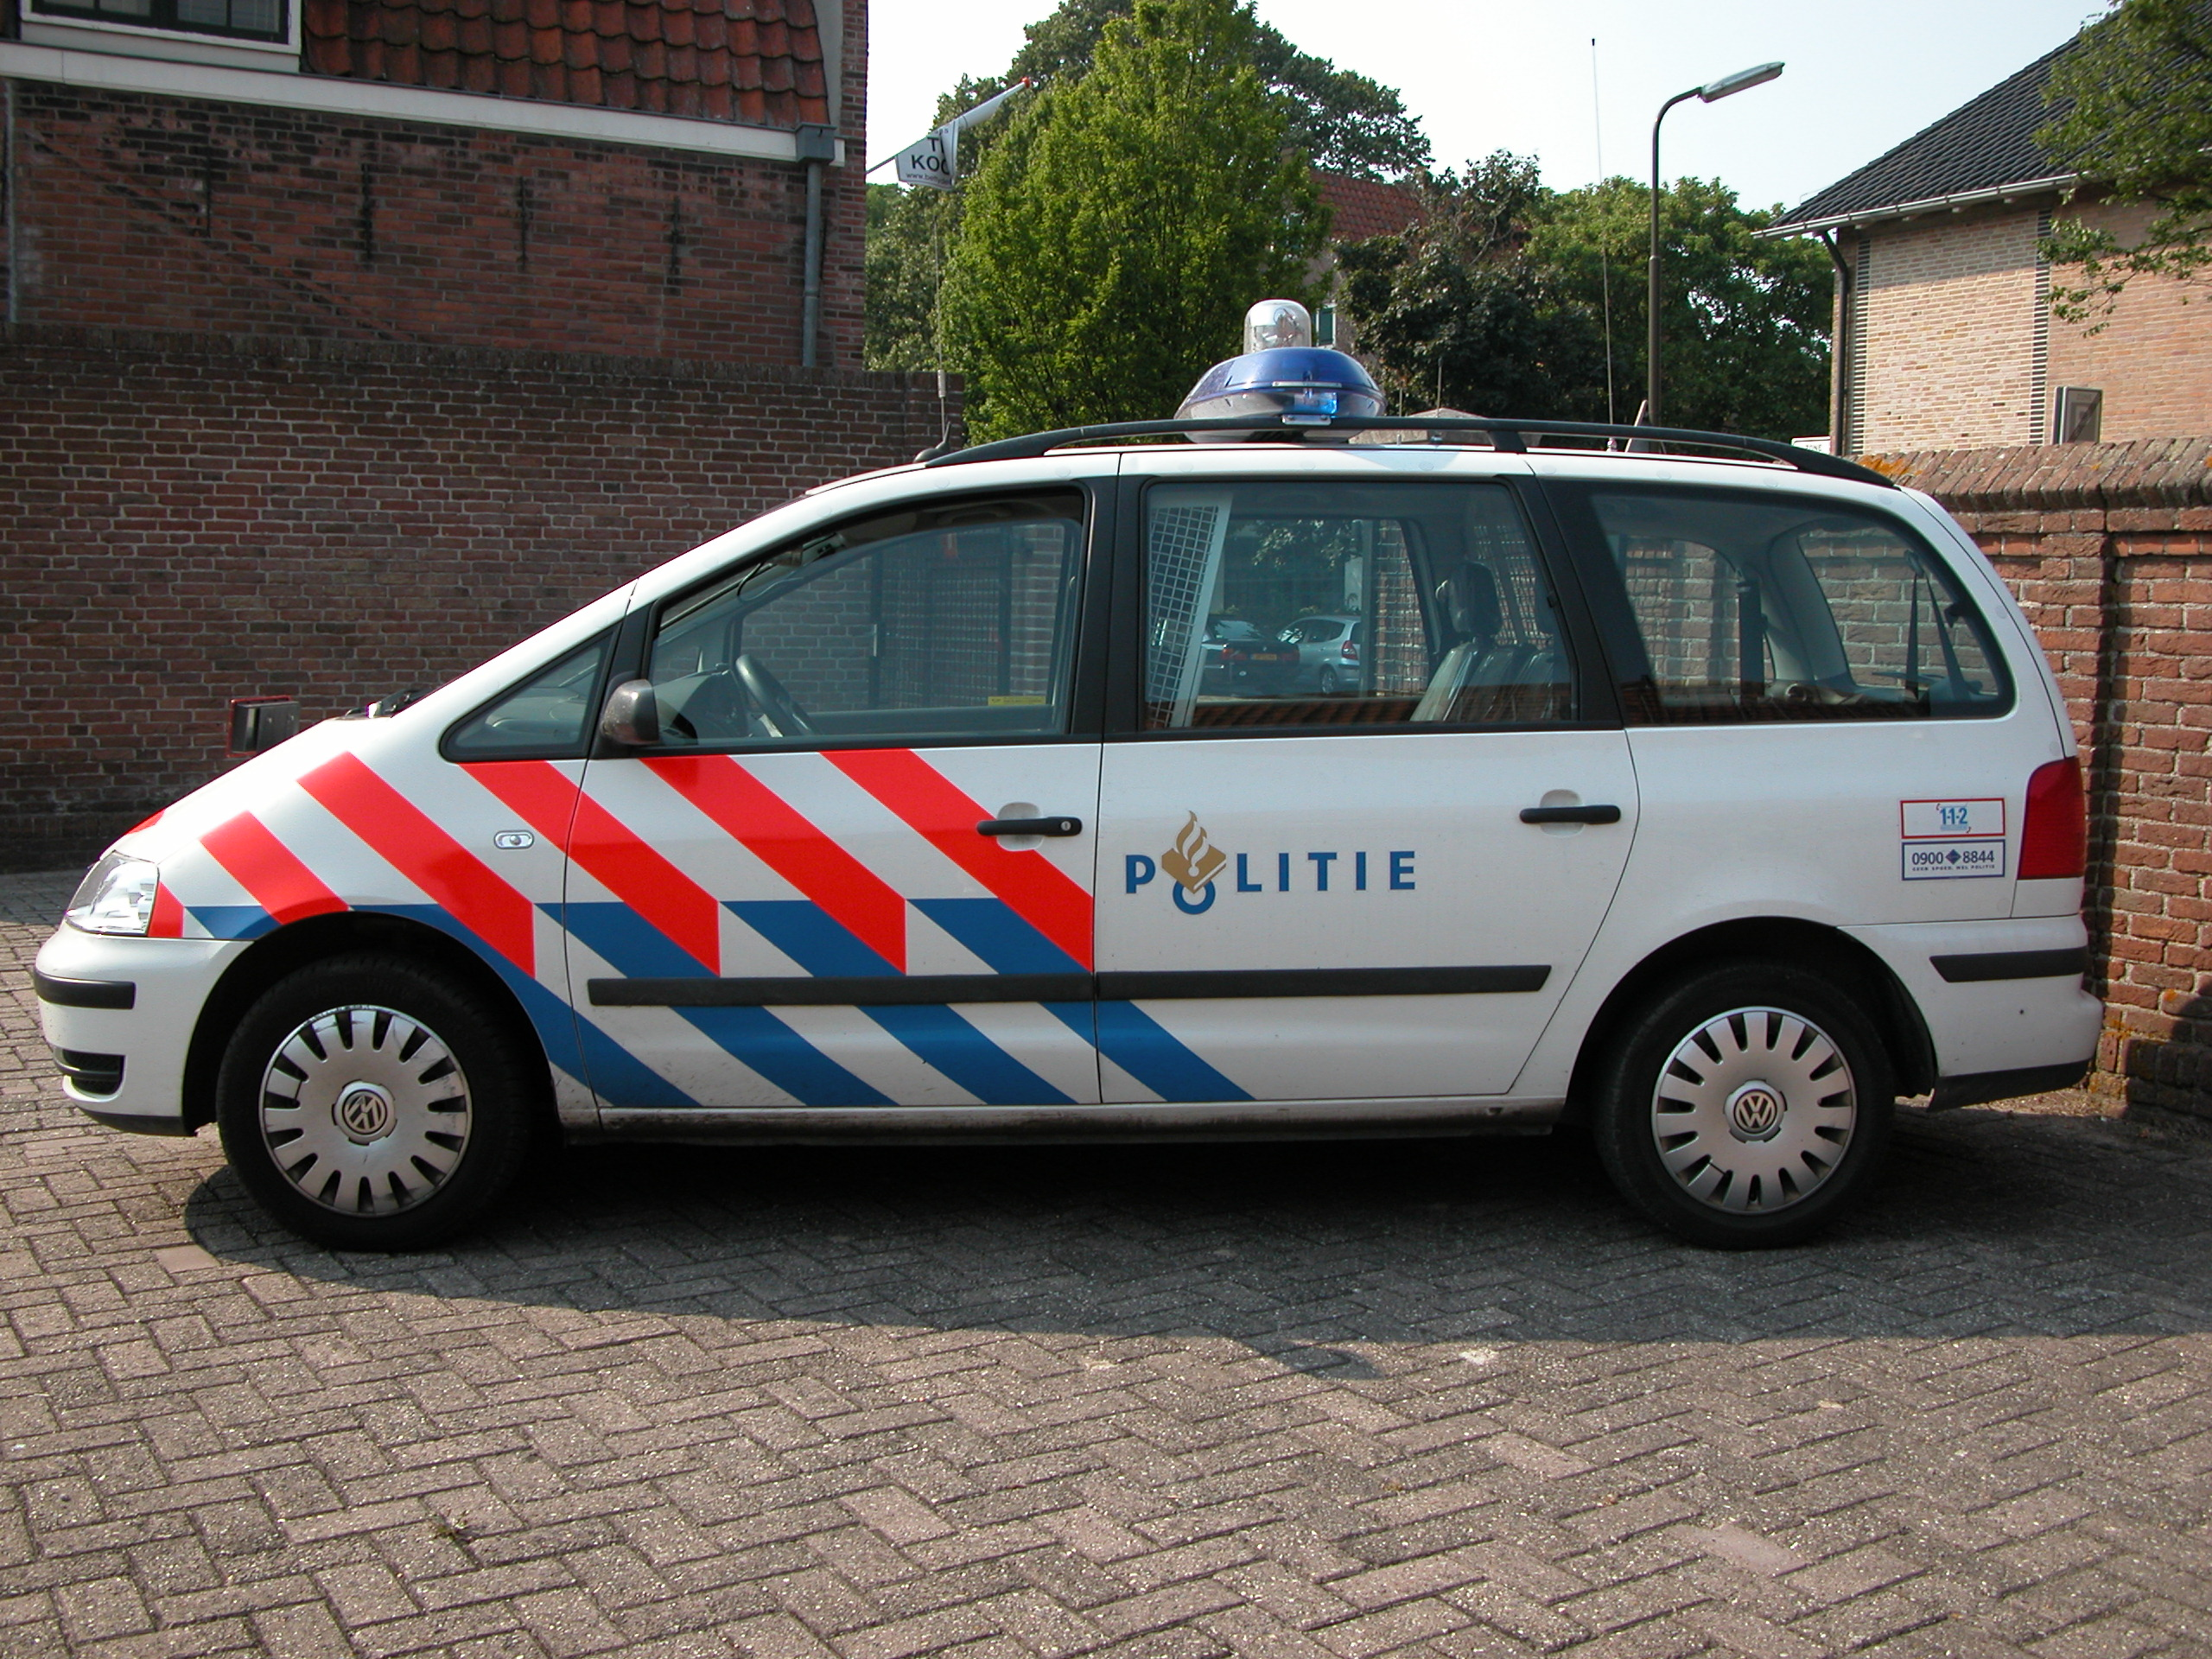 Emergency Services Vehicles Photographs - The Crittenden Automotive Library